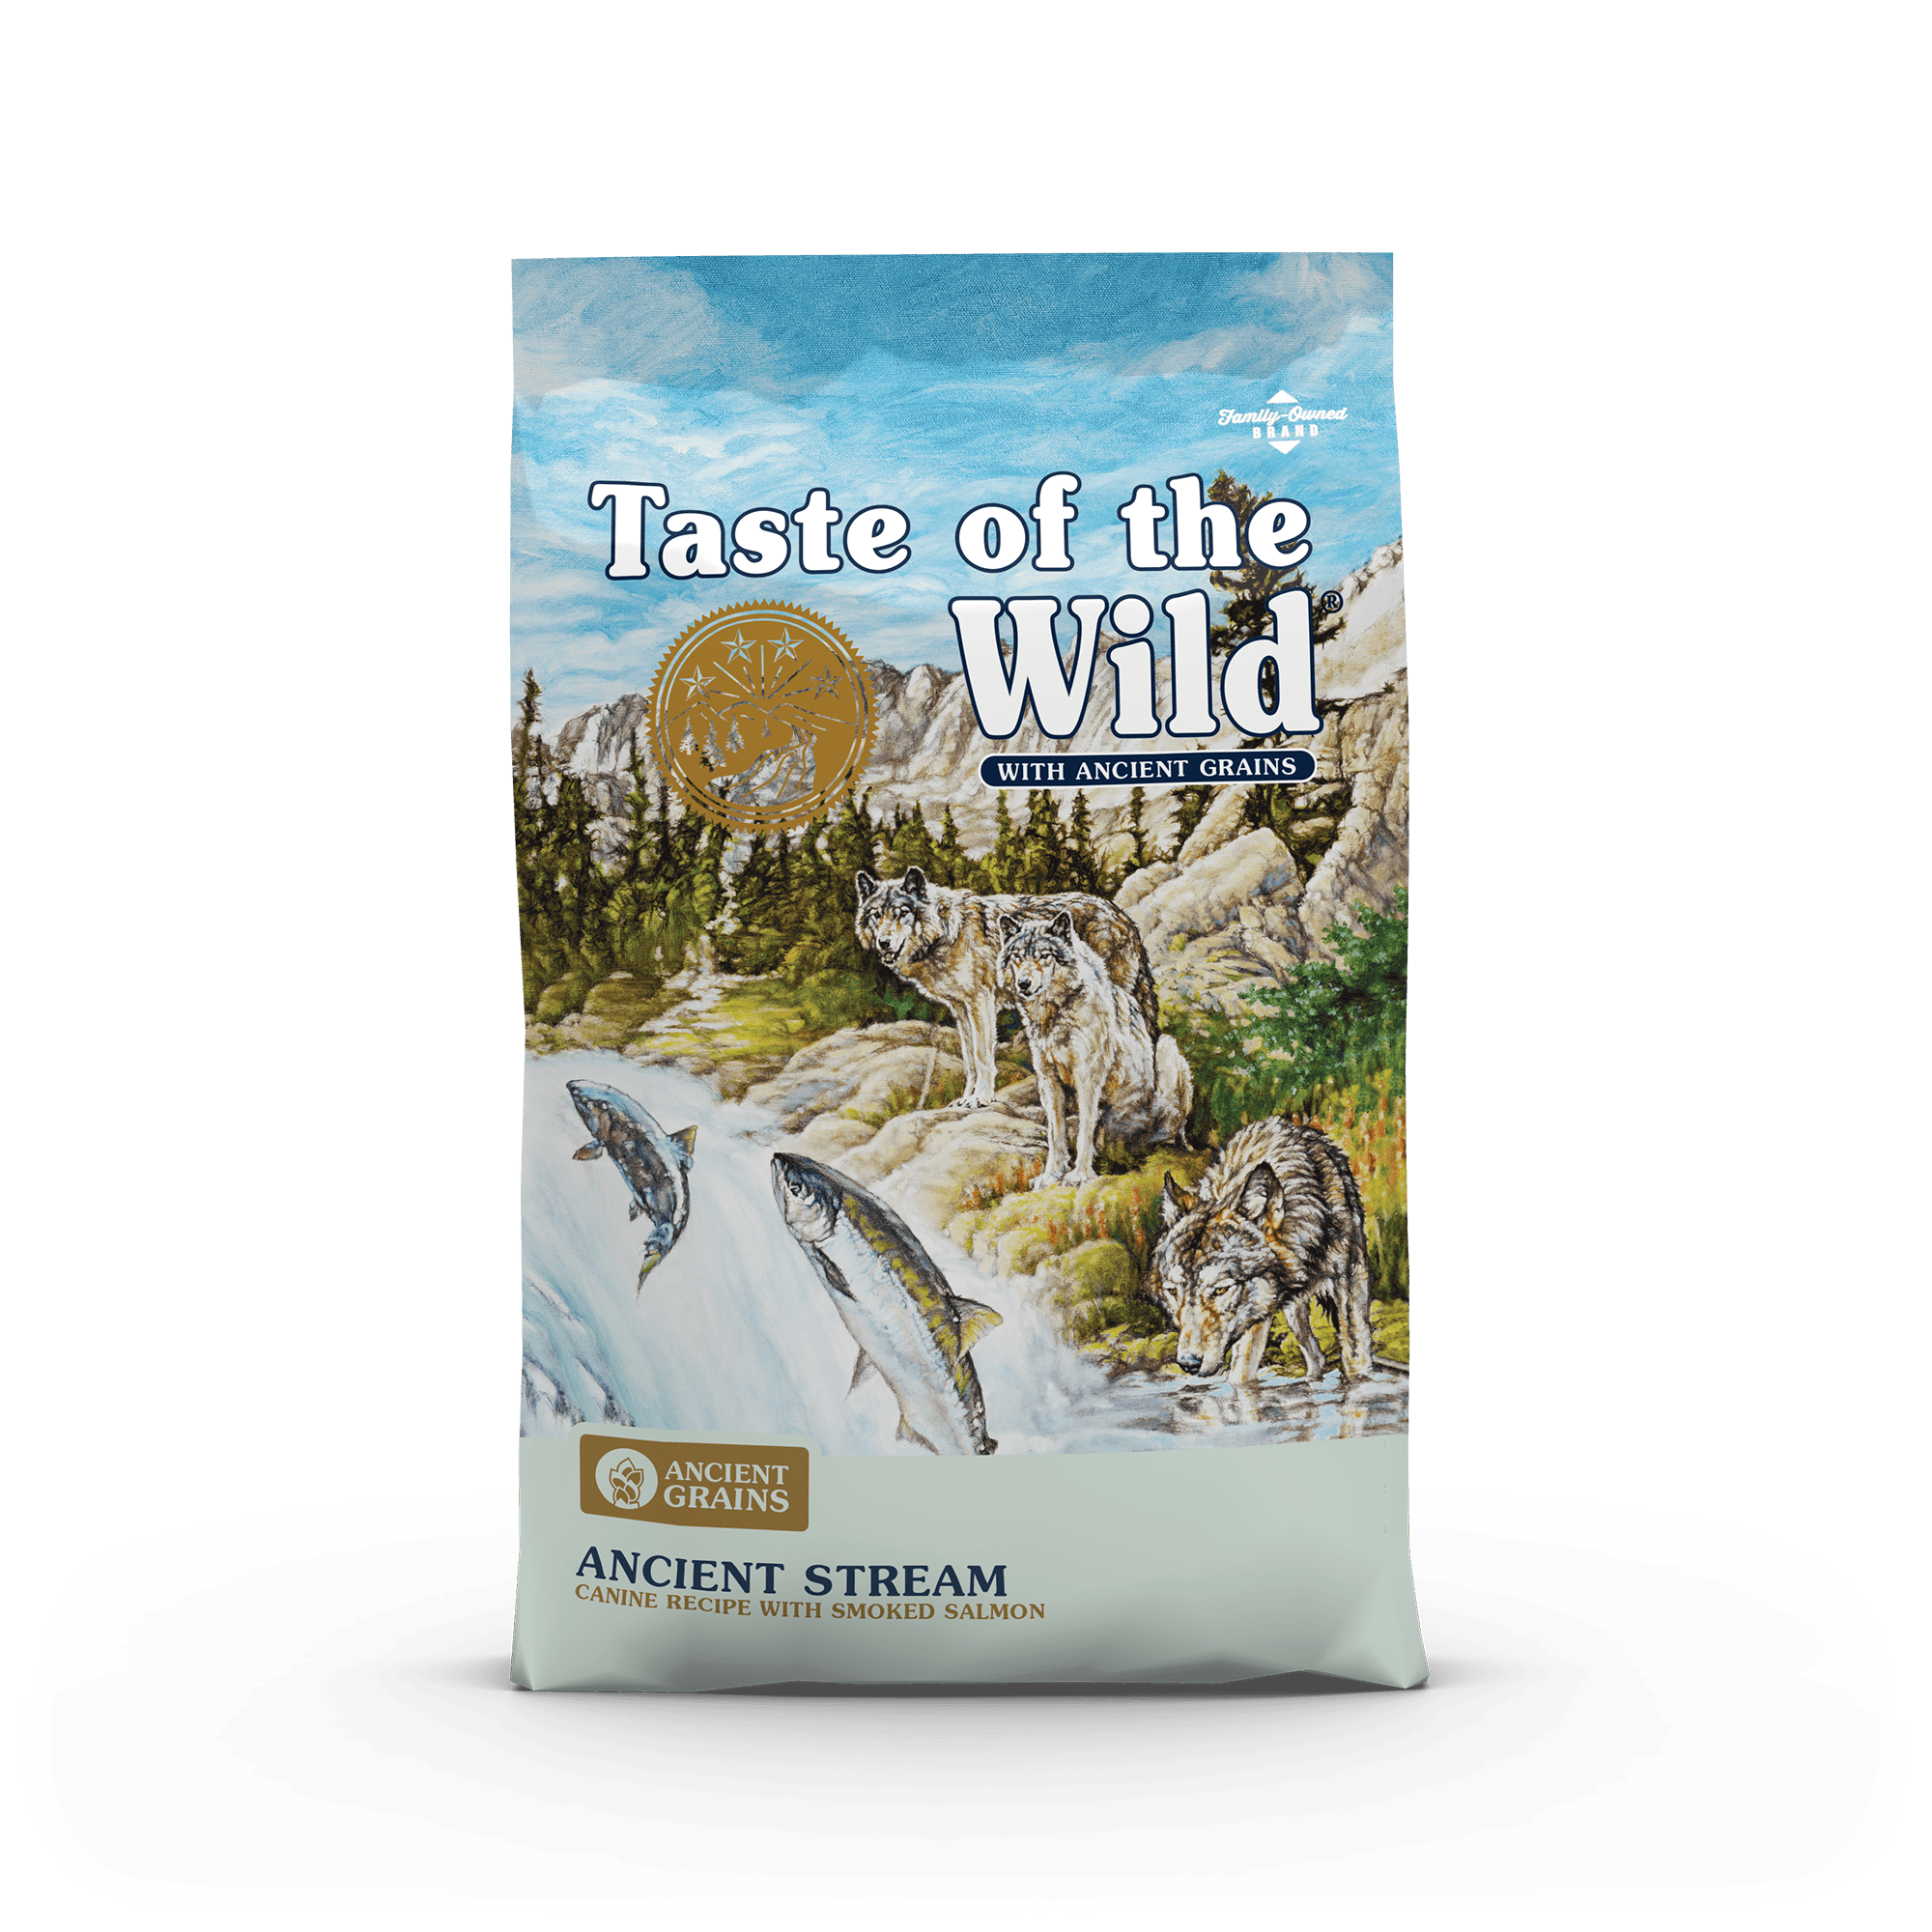 Taste of the Wild Ancient Grains  Ancient Stream Canine Recipe